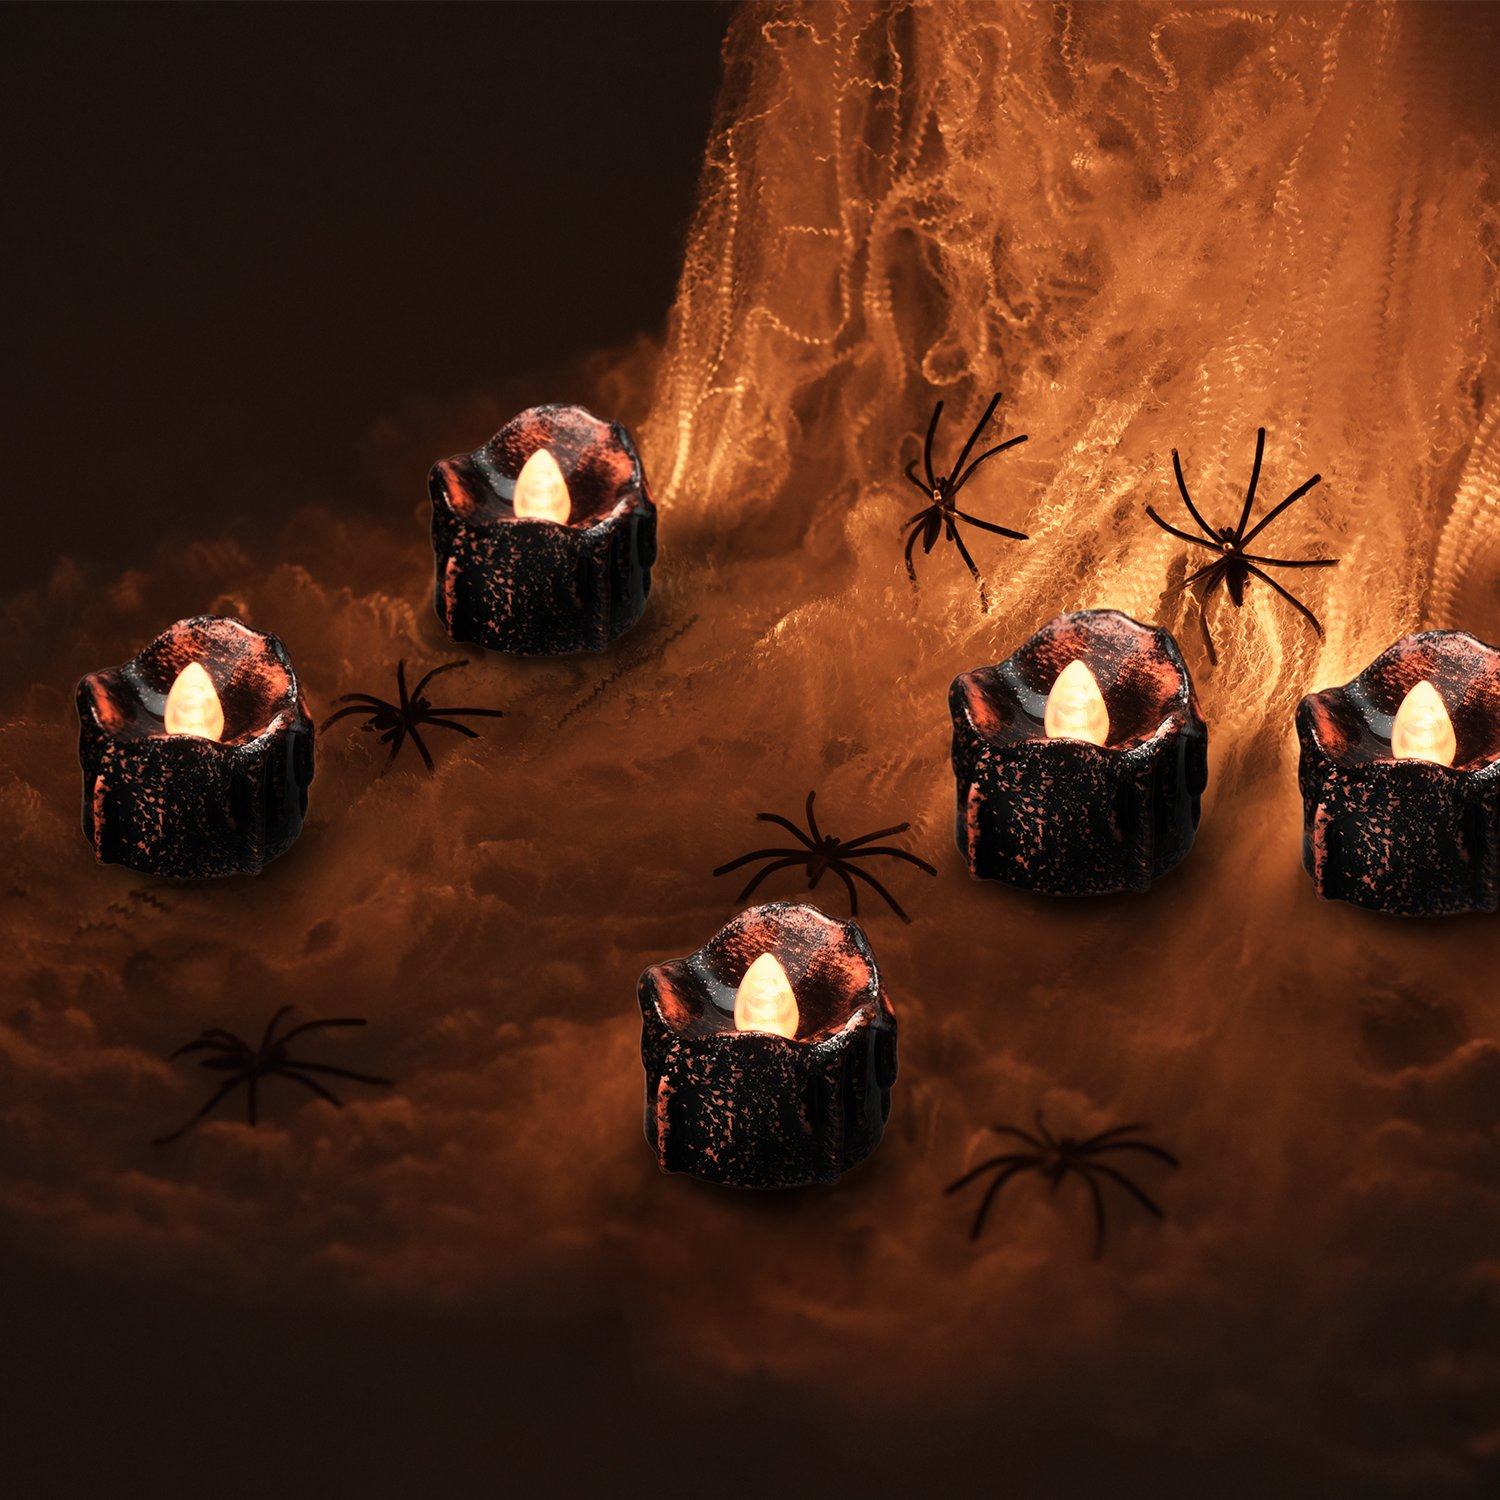 eLander Halloween Decorations Candles Tea Lights, Battery Operated, Flickering Flameless [12 Pack – Amber Yellow]